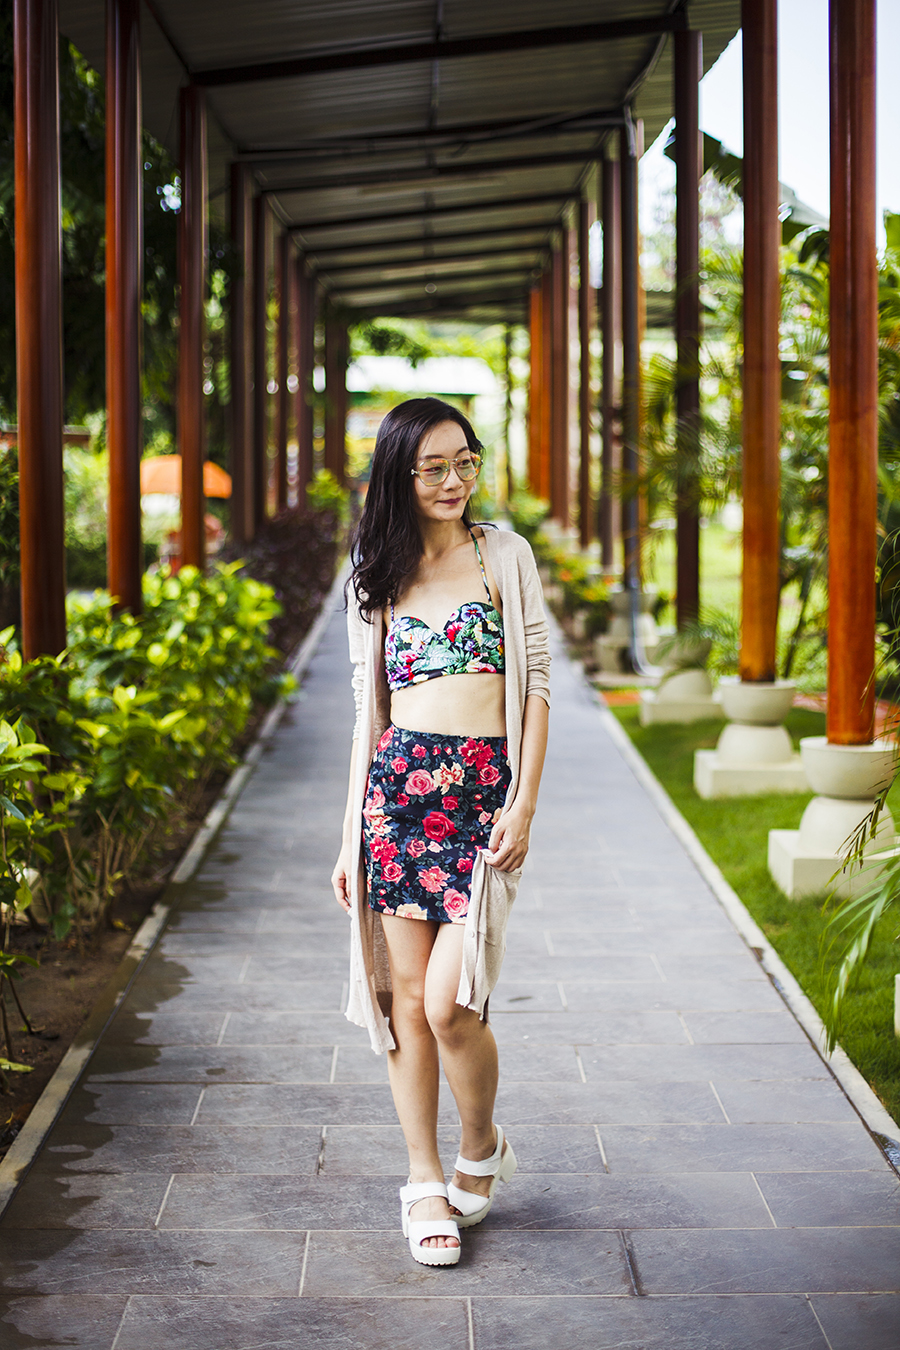 Floral two piece poolside outfit:  Motel Rocks floral bikini top, Forever 21 floral banded skirt, Guess iridescent sunglasses, Taobao white platform sandals, Zara long v-neck cardigan, Osewaya mermaid earrings via JRunway.